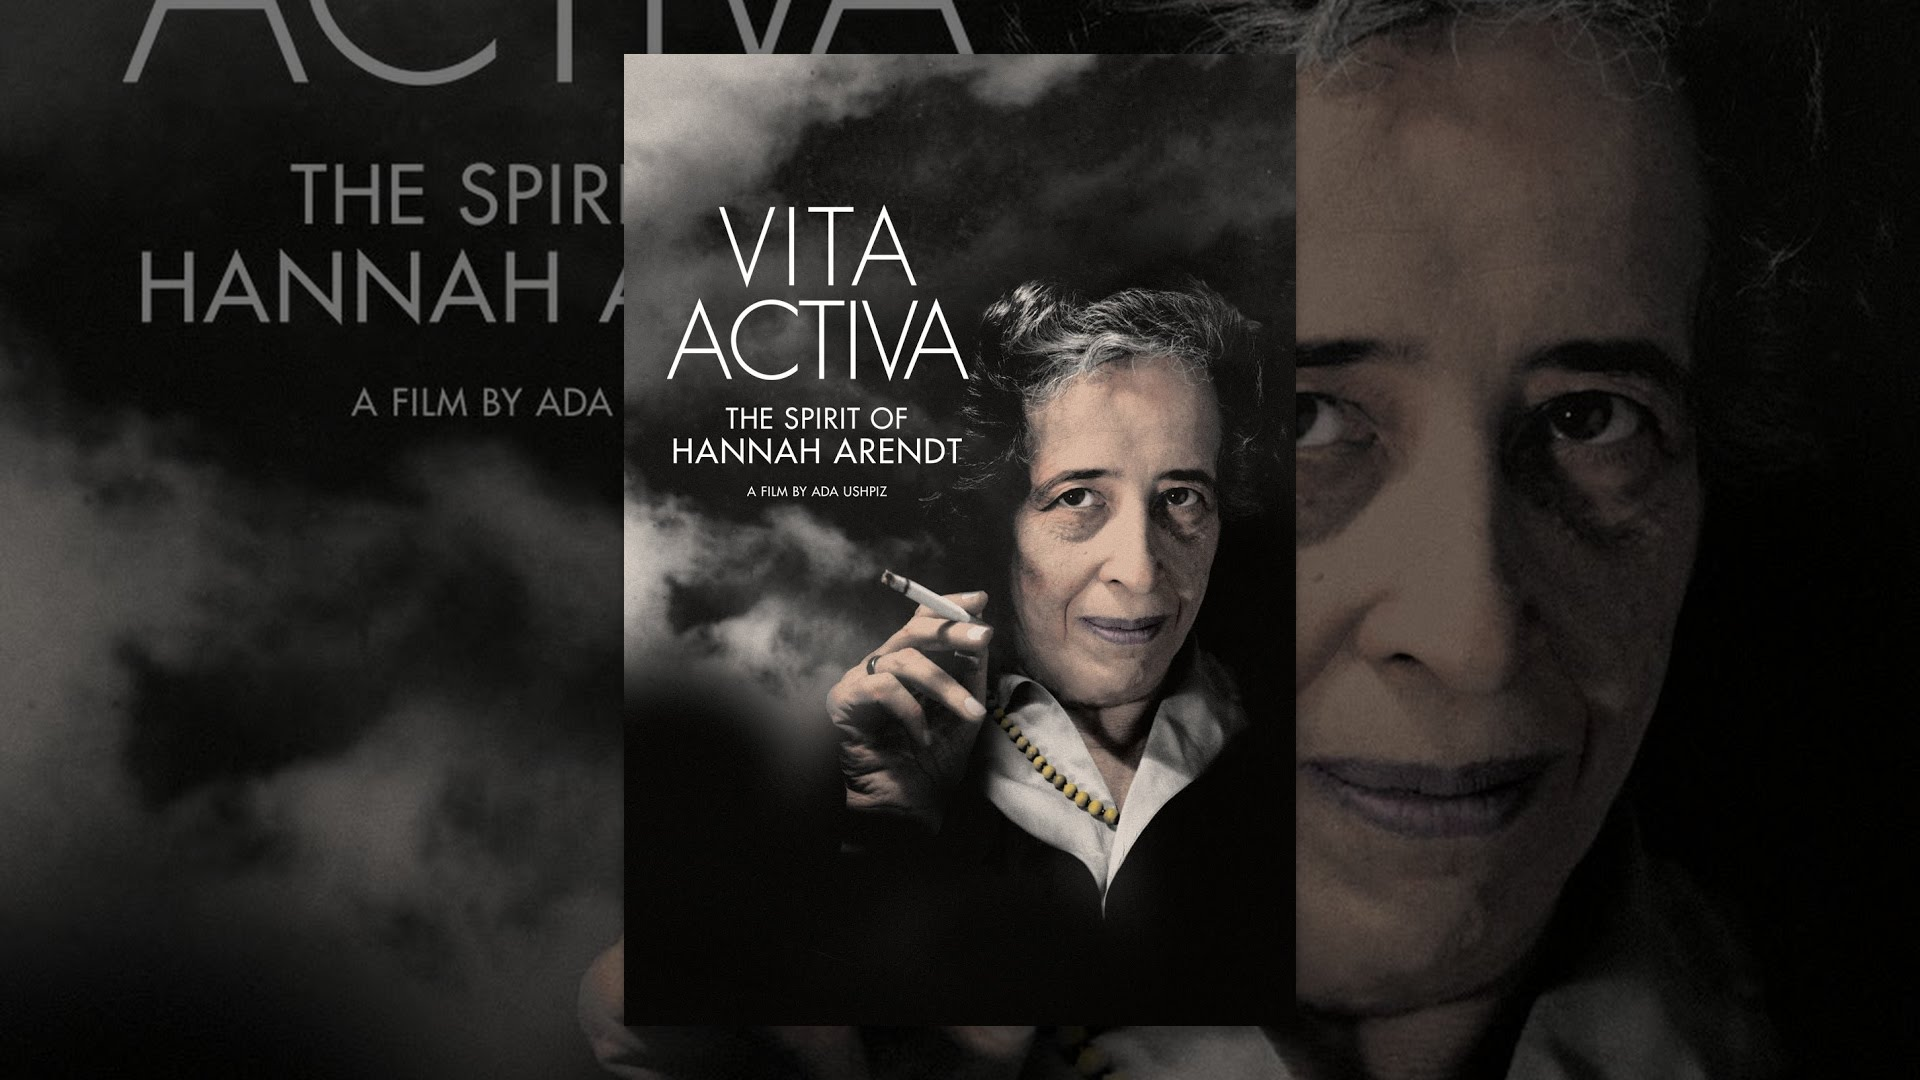 a review of hannah arendts account of vita activa Vita activa takes viewers on a two-hour long journey into the heart of arendt's thinking about the question of evil the net effect of the movie gives a positive image of hannah arendt did you feel as if you were answering some of her critics with this film.